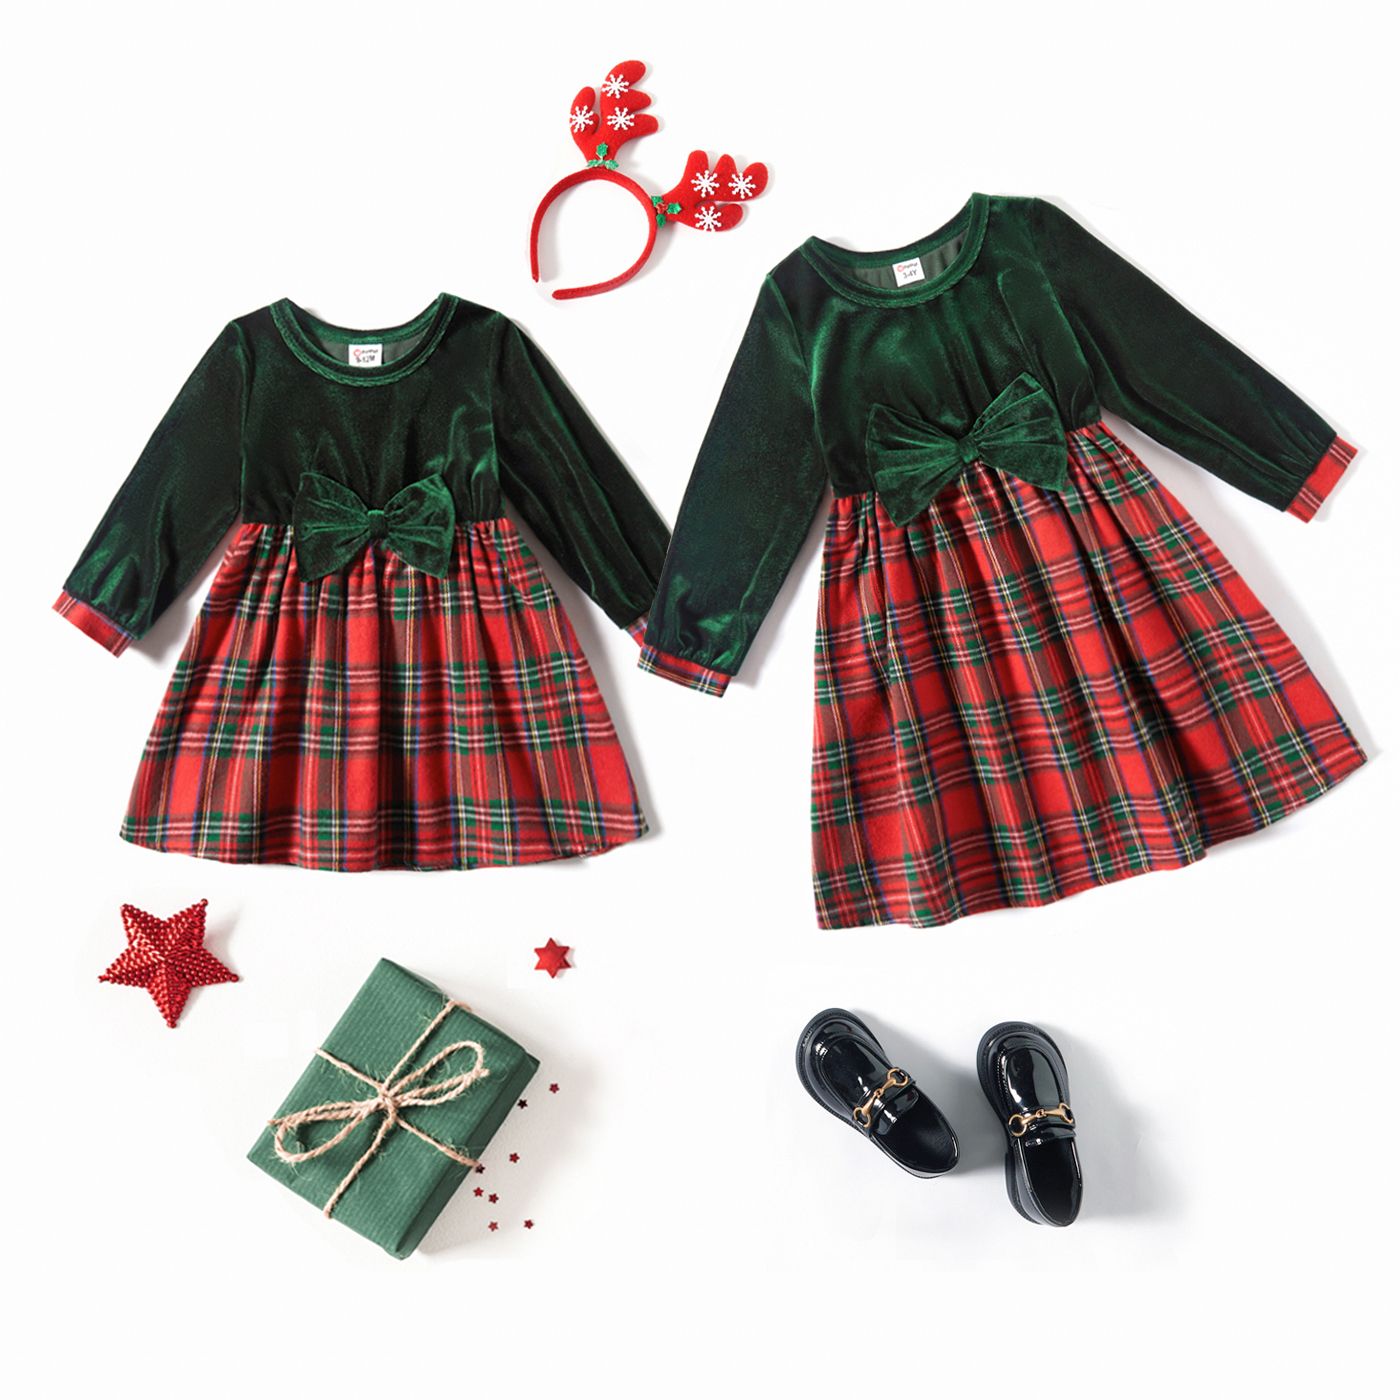 Christmas Velvet Bowknot Long-sleeve Splicing Red Plaid A-line Dress for Sister and Me